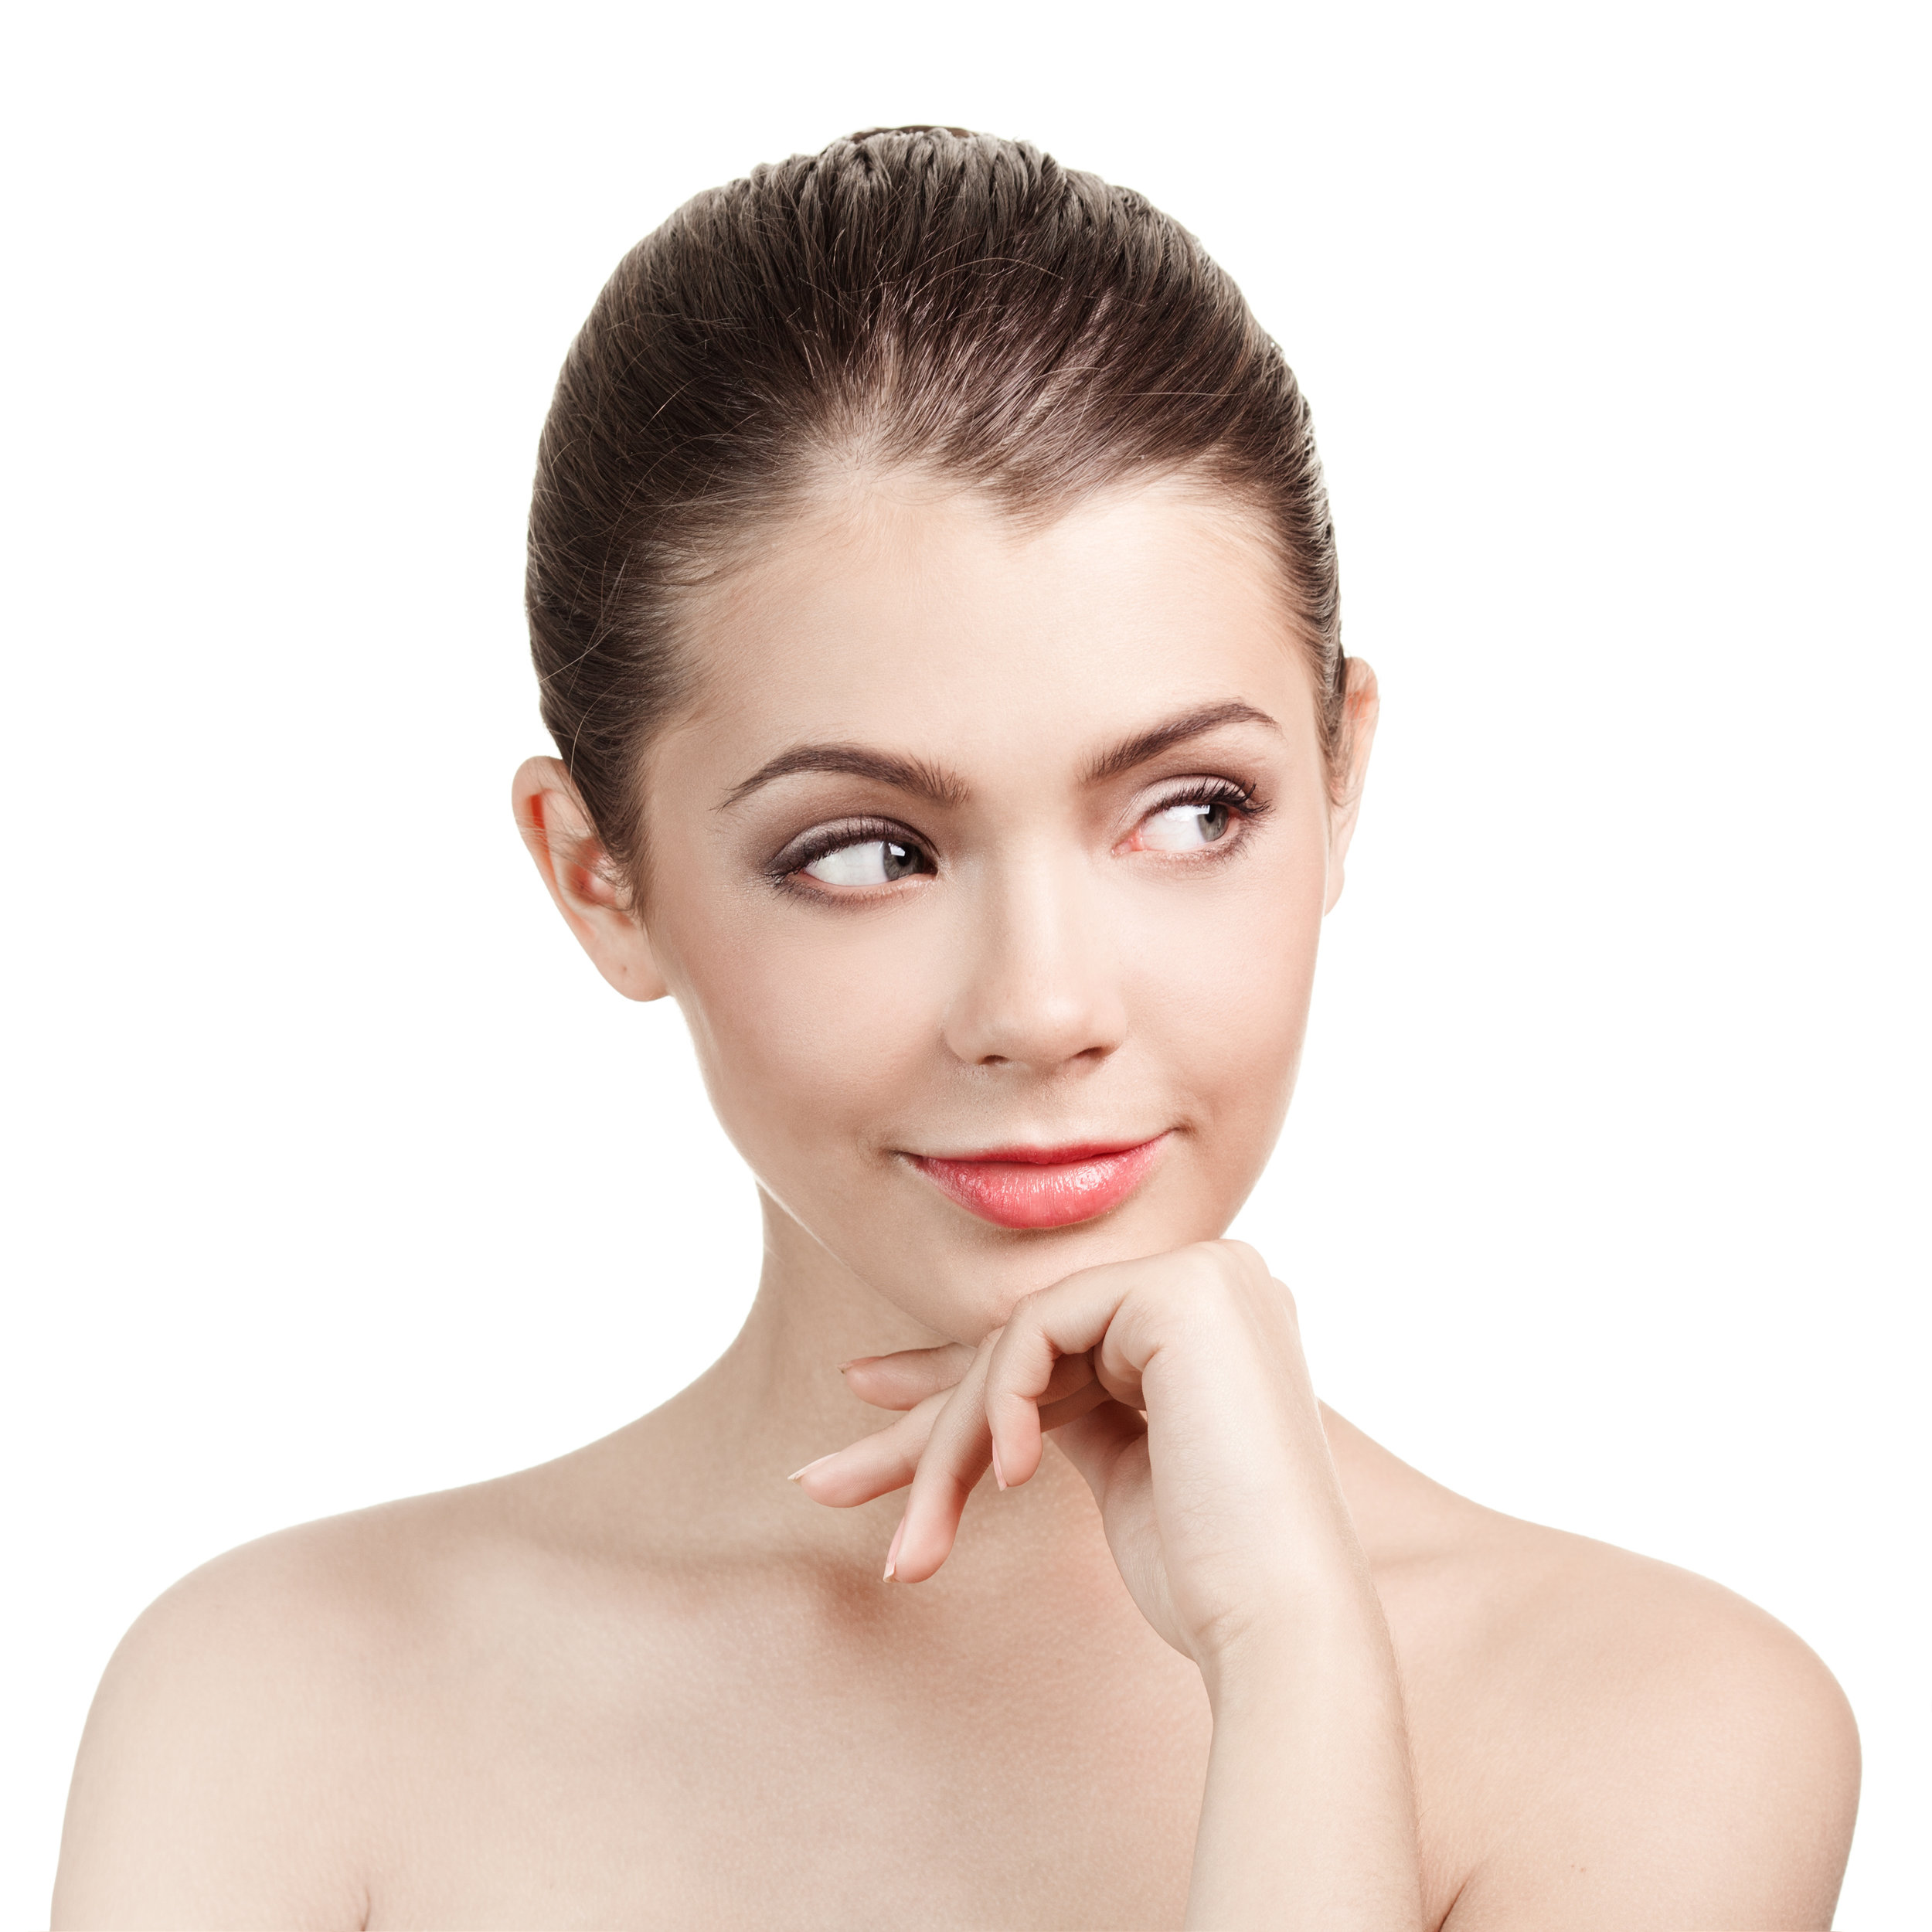 20's - In our 20's our skin is voluminous, with little to no signs of aging. A good skin care regimen, regular exfoliation and hydration keep skin looking youthful and resilient! Here are some treatments we recommend :